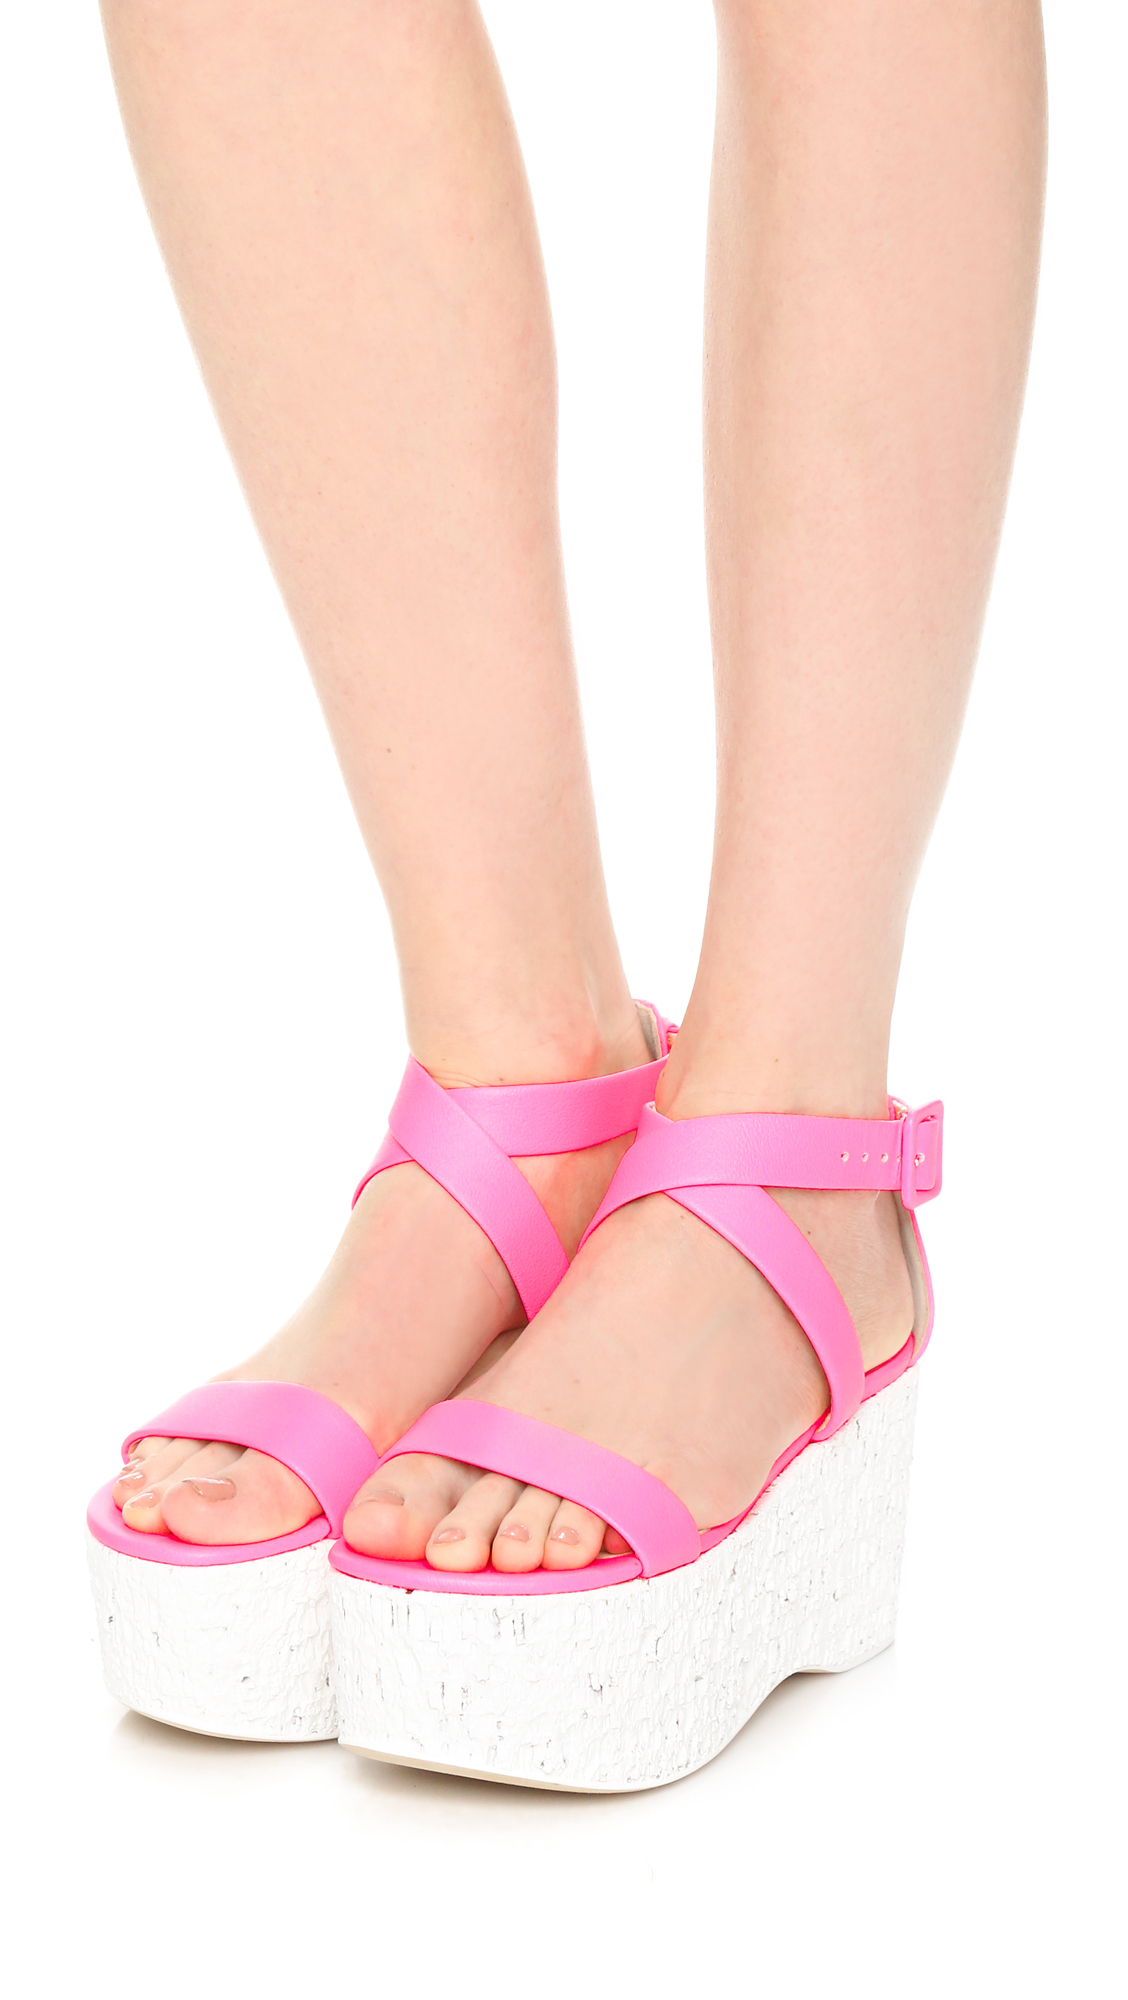 e0bf2359d Lyst - Giuseppe Zanotti Leather Platform Sandals in Pink